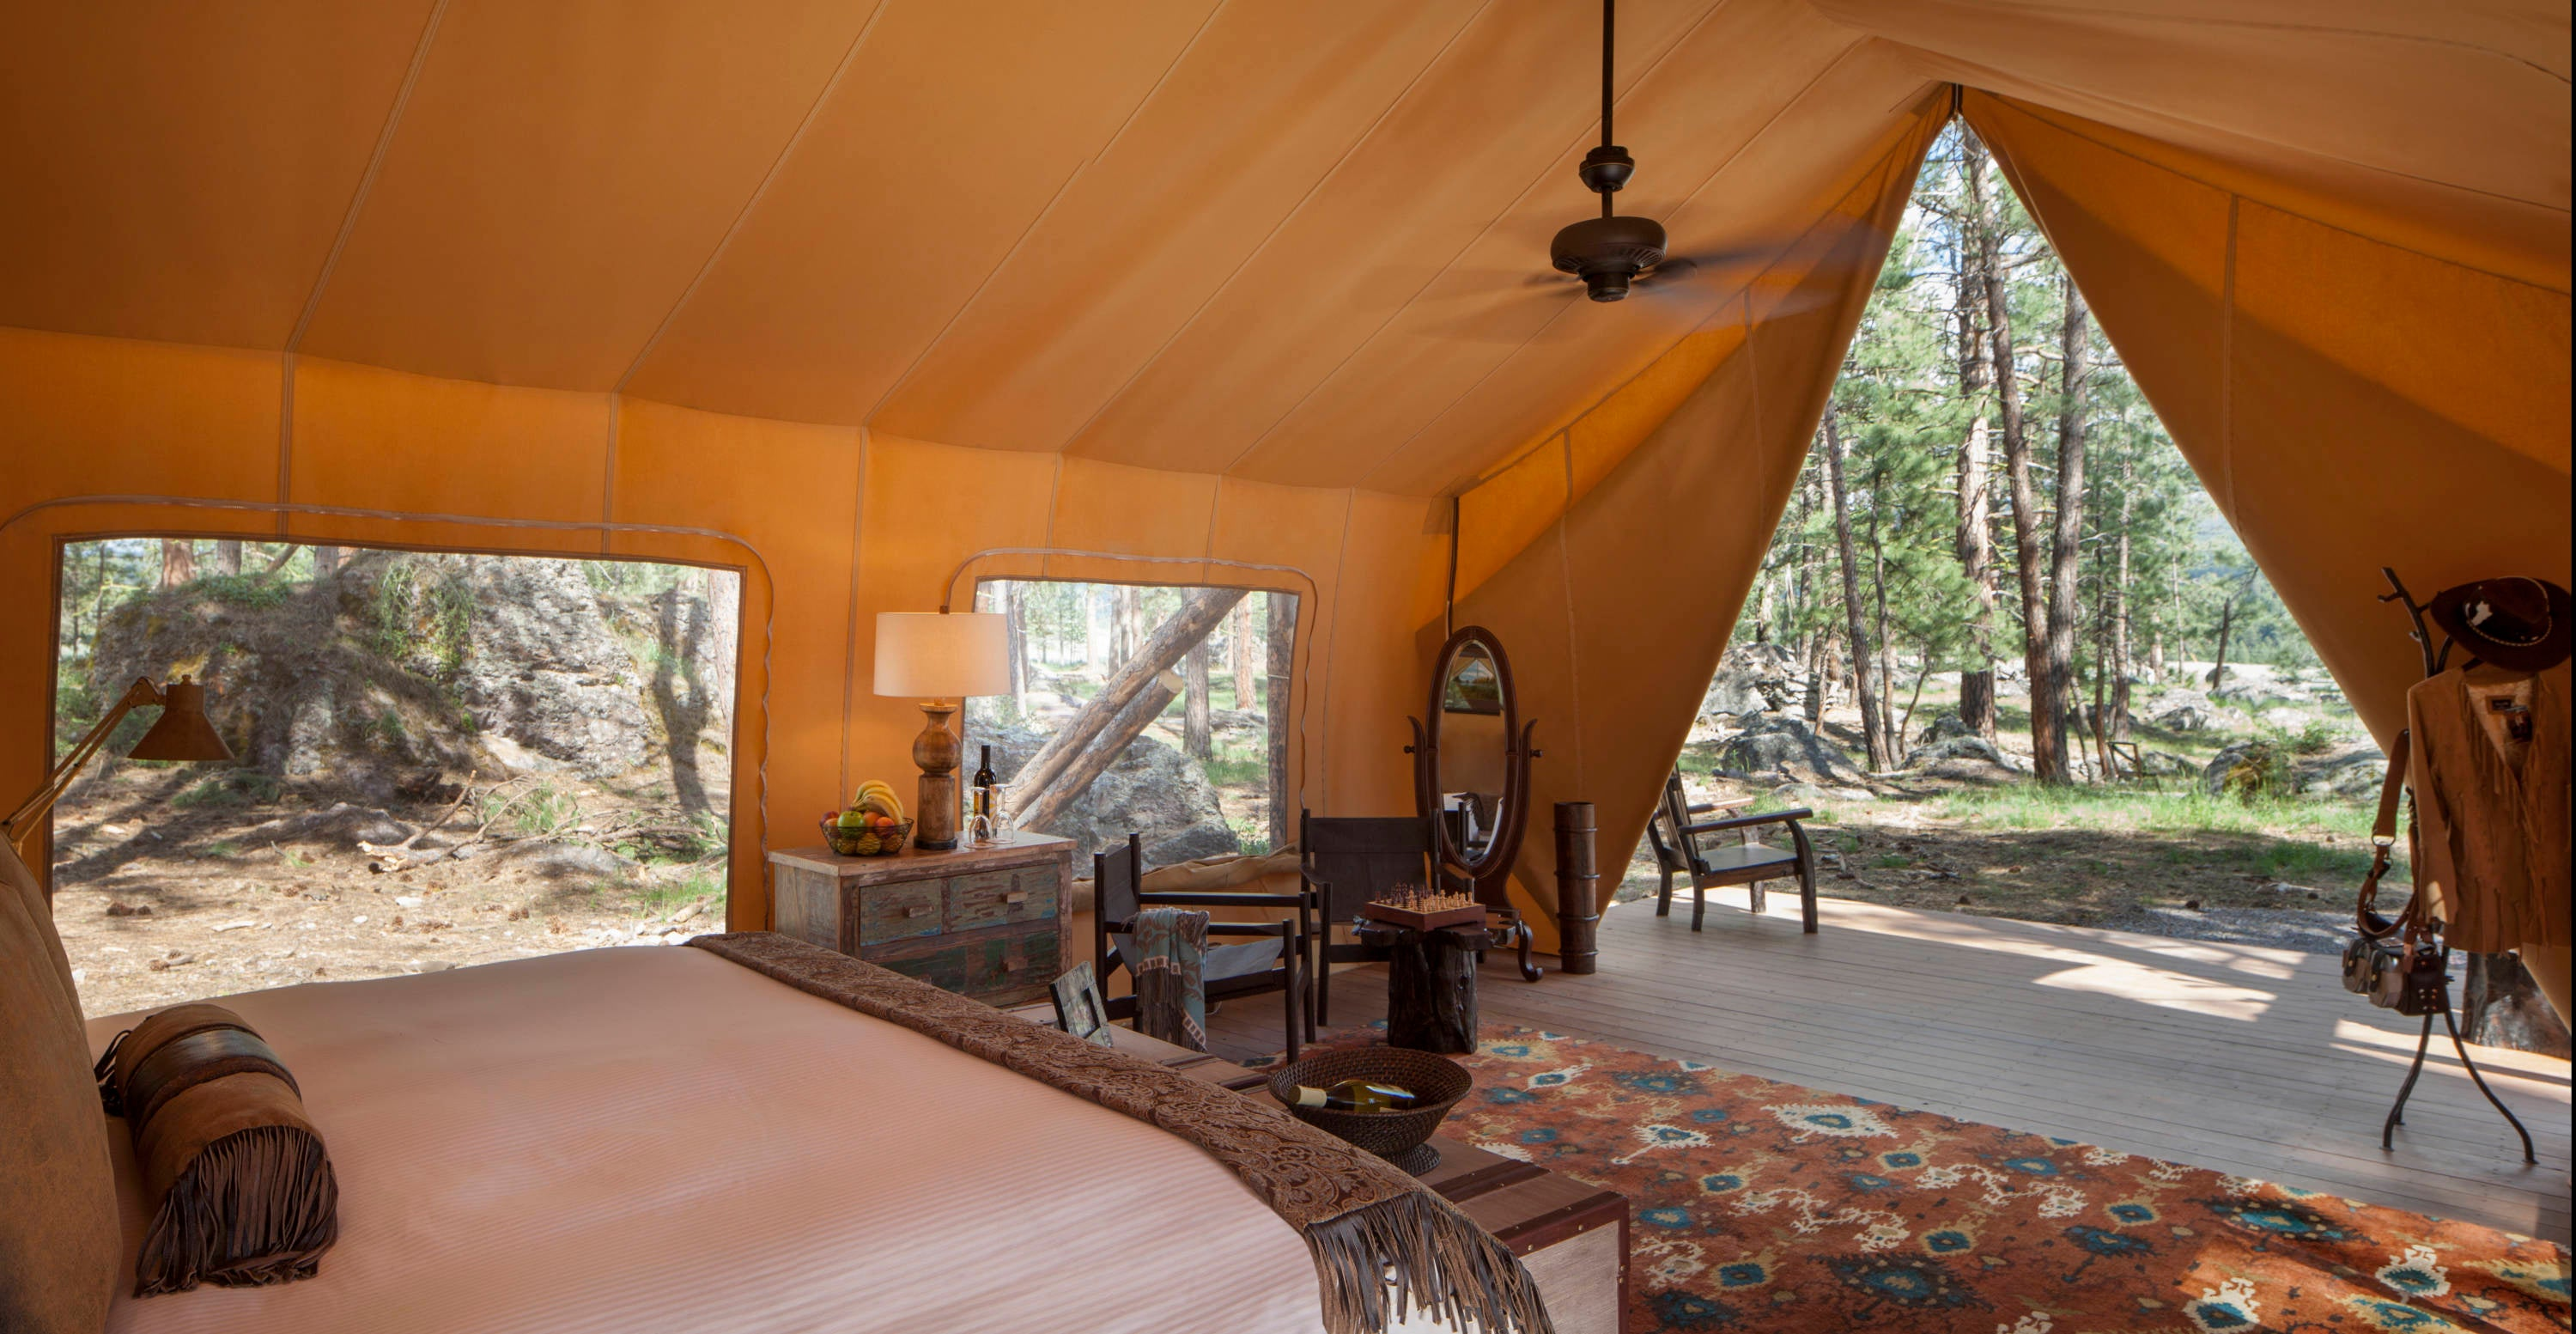 Best Places To Go Glamping In The Us